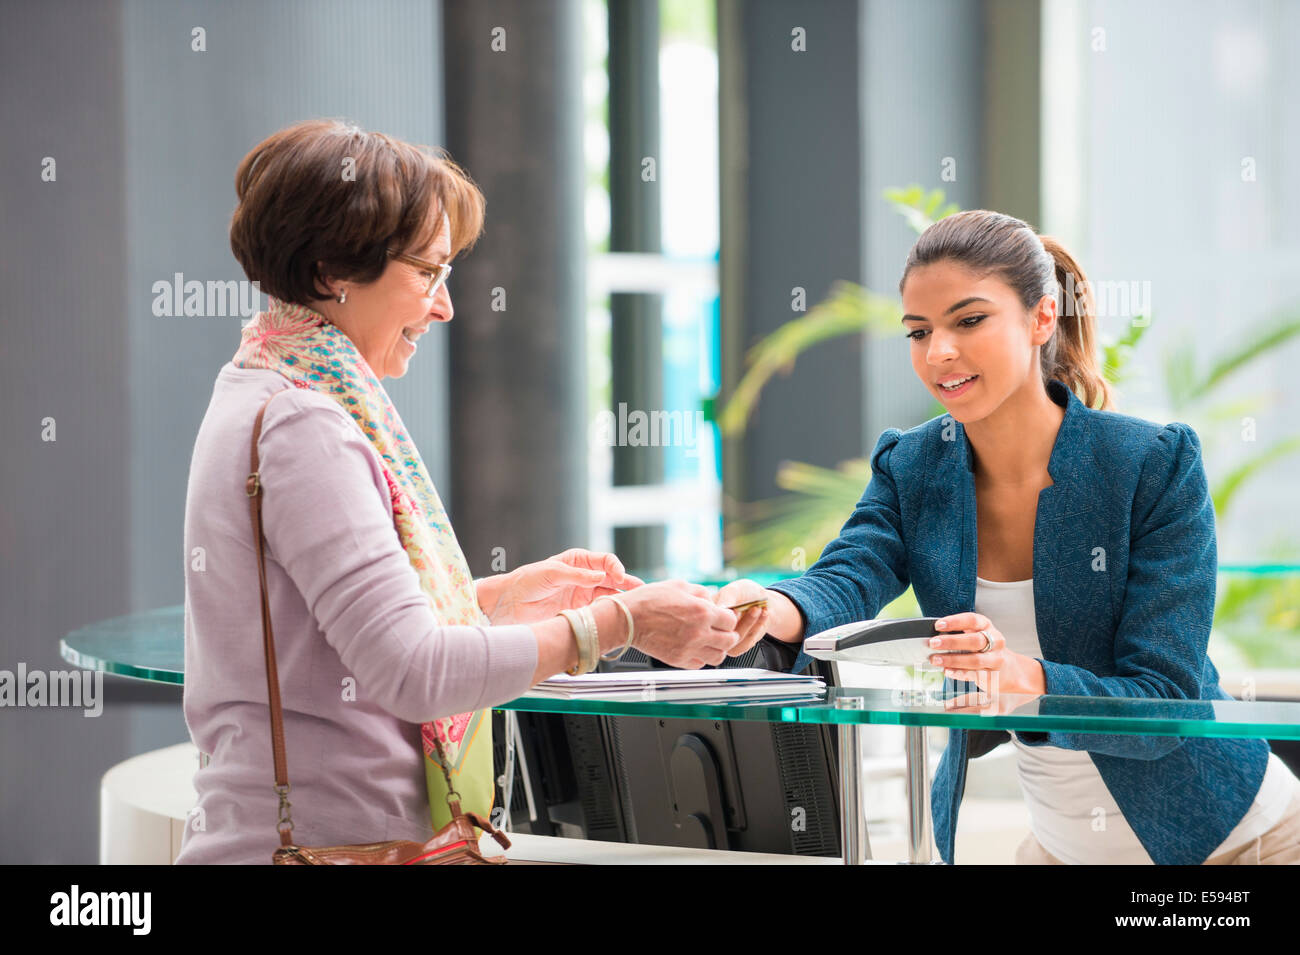 Woman making payment with credit card at reception desk - Stock Image